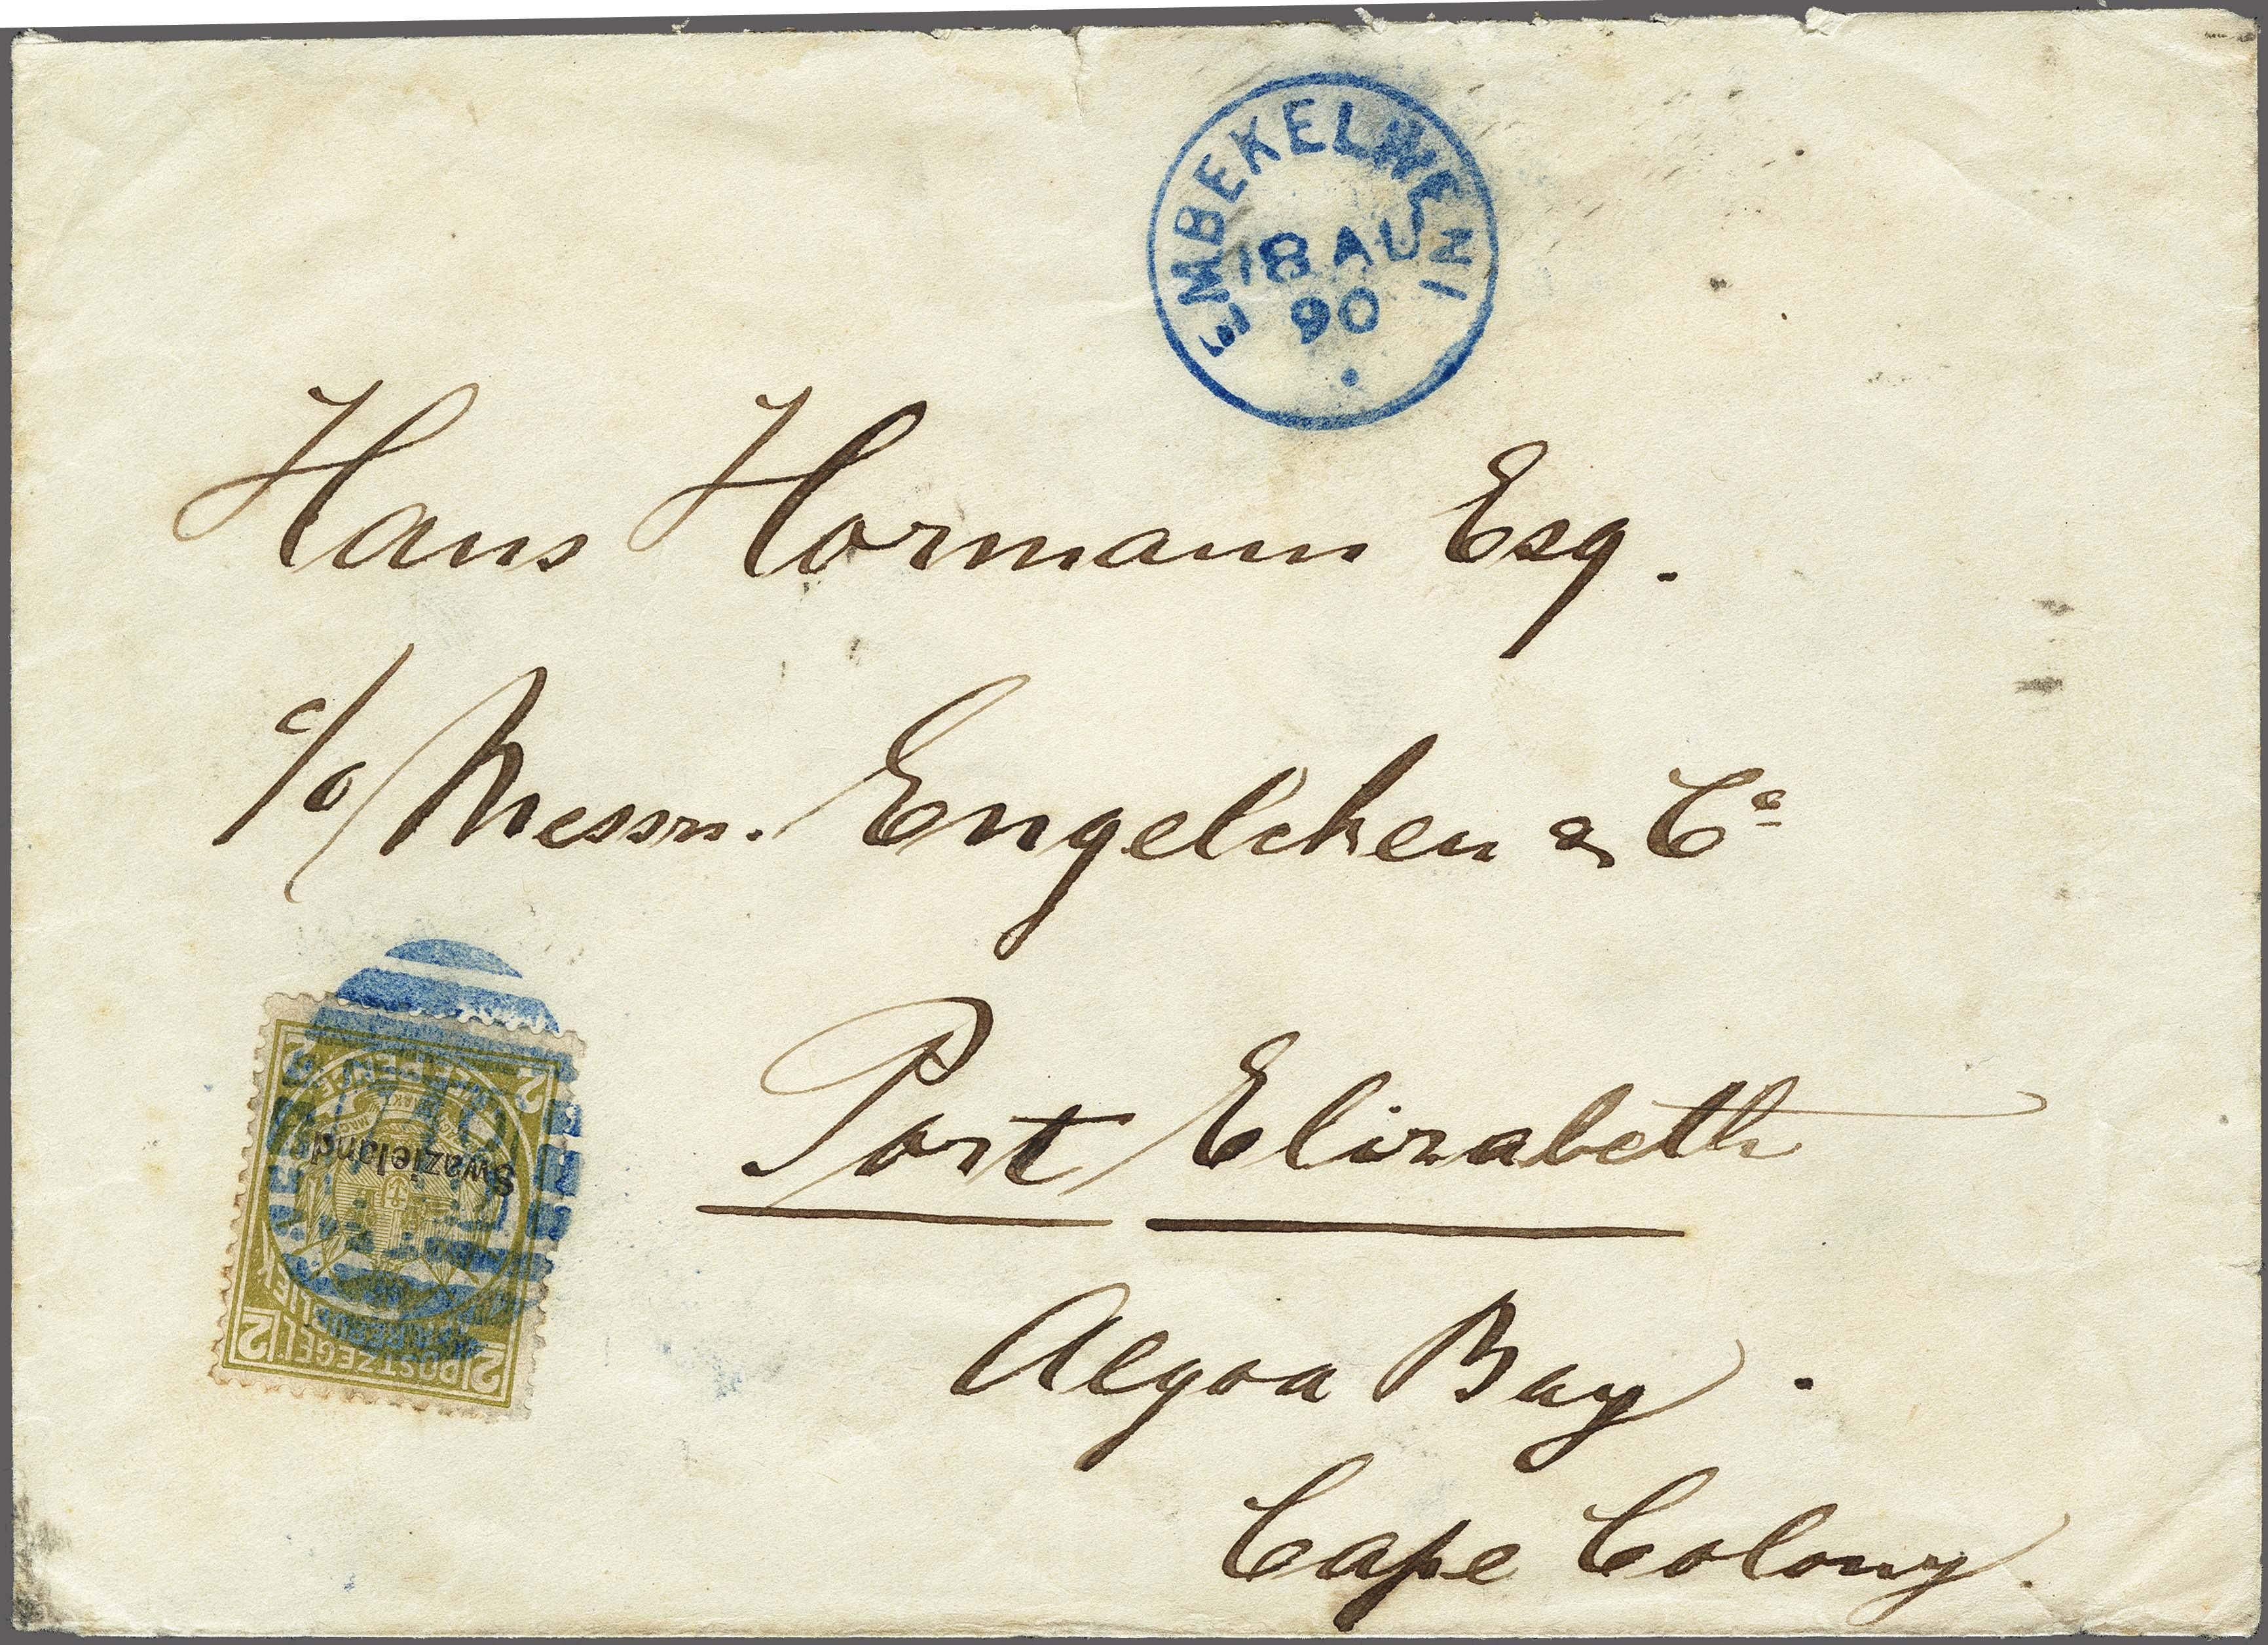 Lot 155 - Great Britain and former colonies swaziland -  Corinphila Veilingen Auction 250-253 - Day 1 - Foreign countries